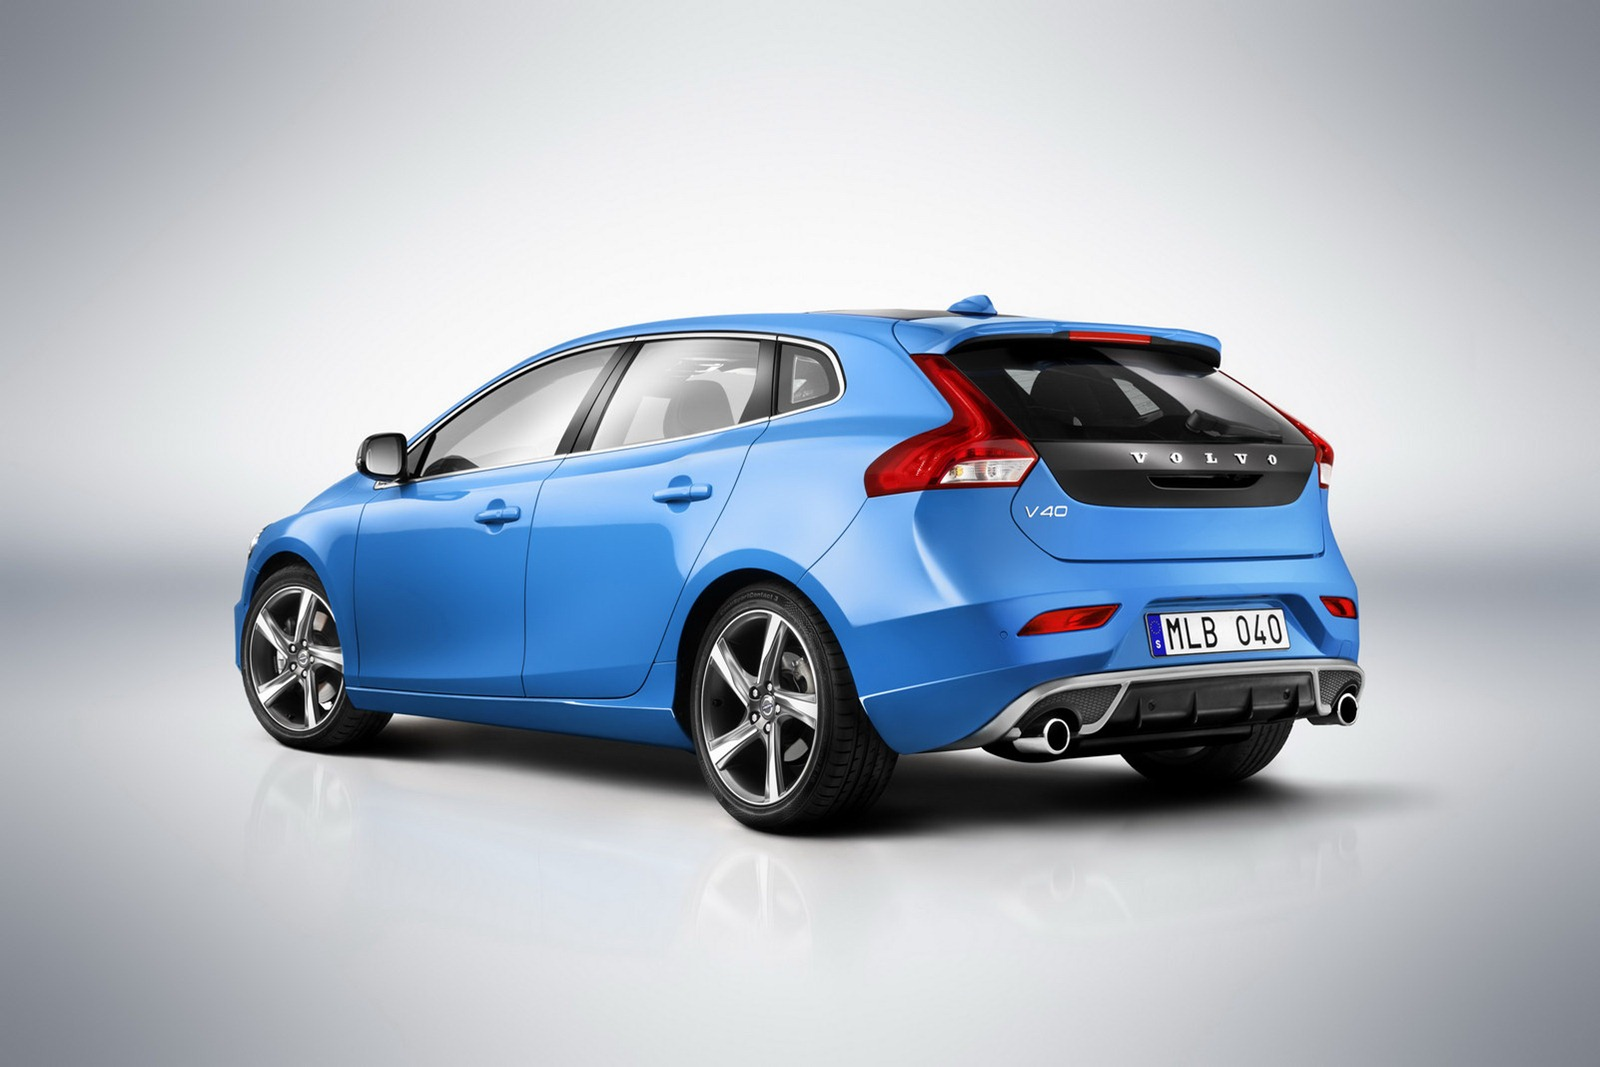 2013 volvo v40 r design resmi olarak duyuruldu turkeycarblog. Black Bedroom Furniture Sets. Home Design Ideas